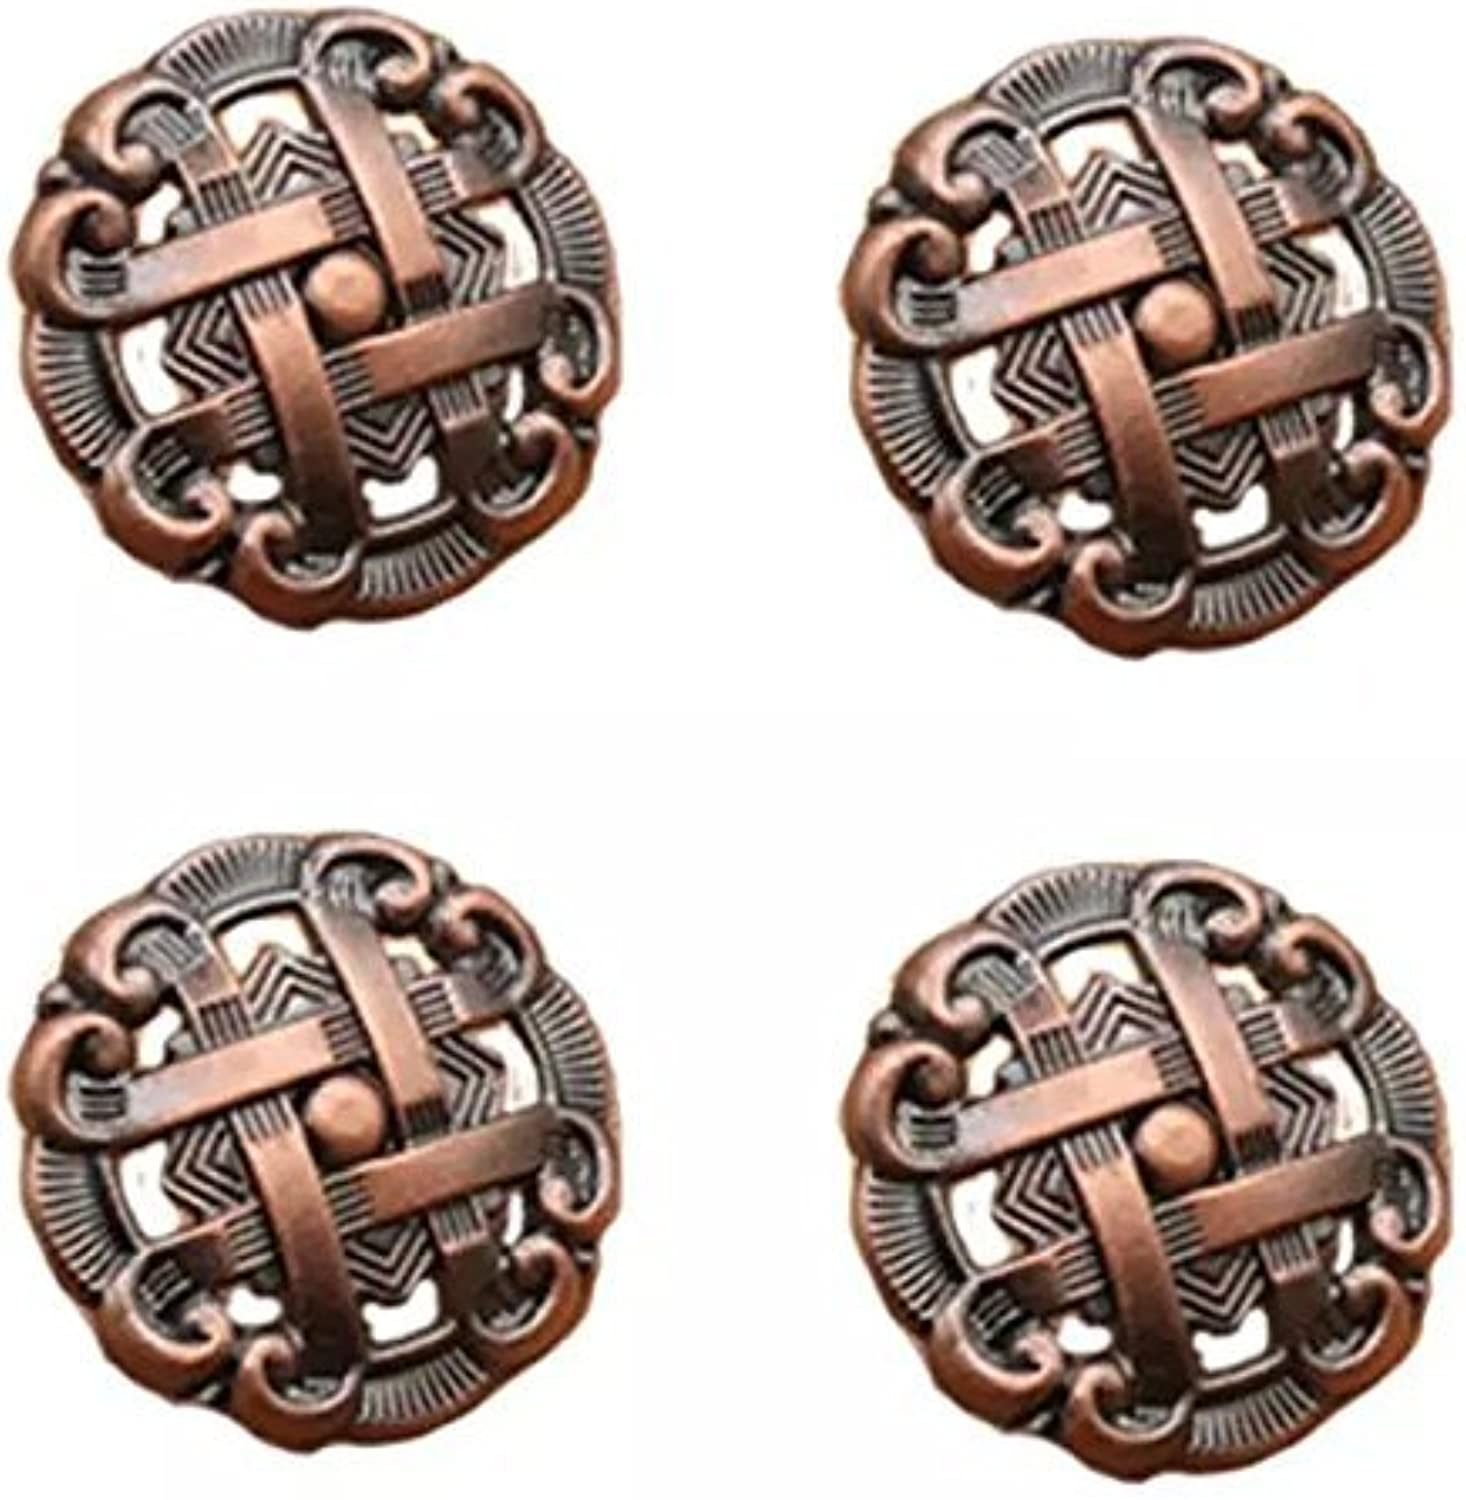 CSKB Bronze 6PCS1.4 Metal Knob With Fretwork Retro Cupboard Cabinet Drawer Pull Door Handle by CSKB